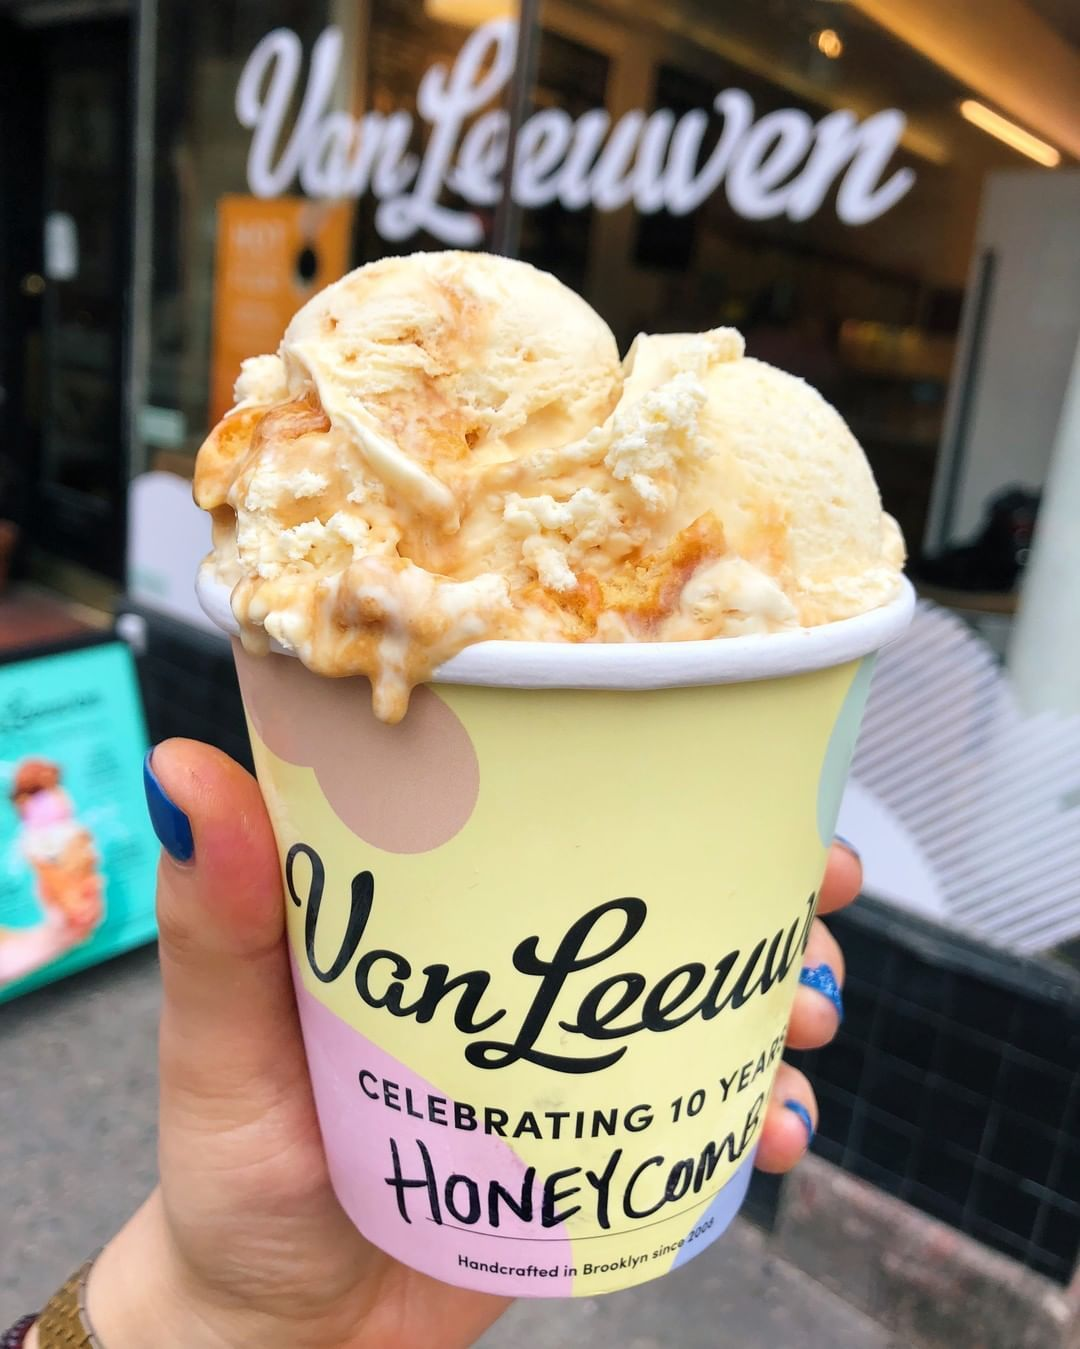 Van Leeuwen Ice Cream On Instagram The Only Way This Would Look Better Is If It Were In Your Hand We Mak Vegan Ice Cream Brands Vegan Ice Cream Ice Cream